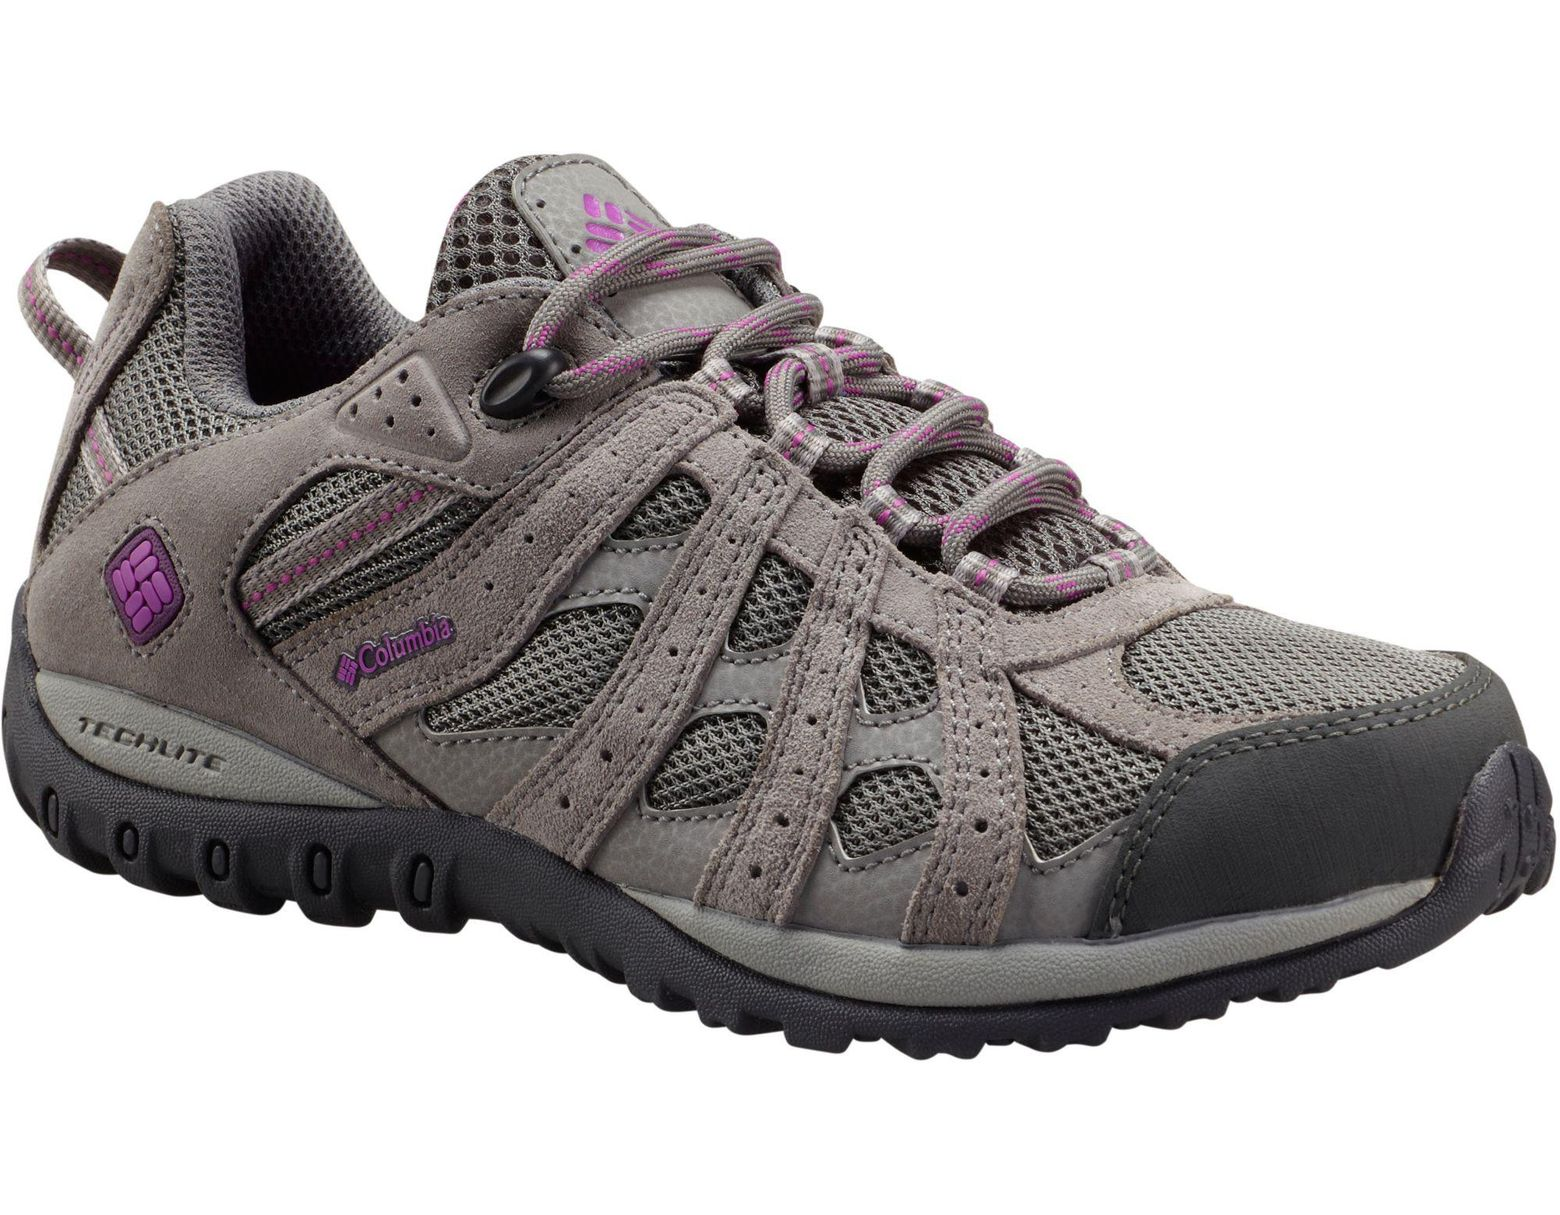 d4f4f279940 Women's Gray Redmond Waterproof Low Hiking Shoes